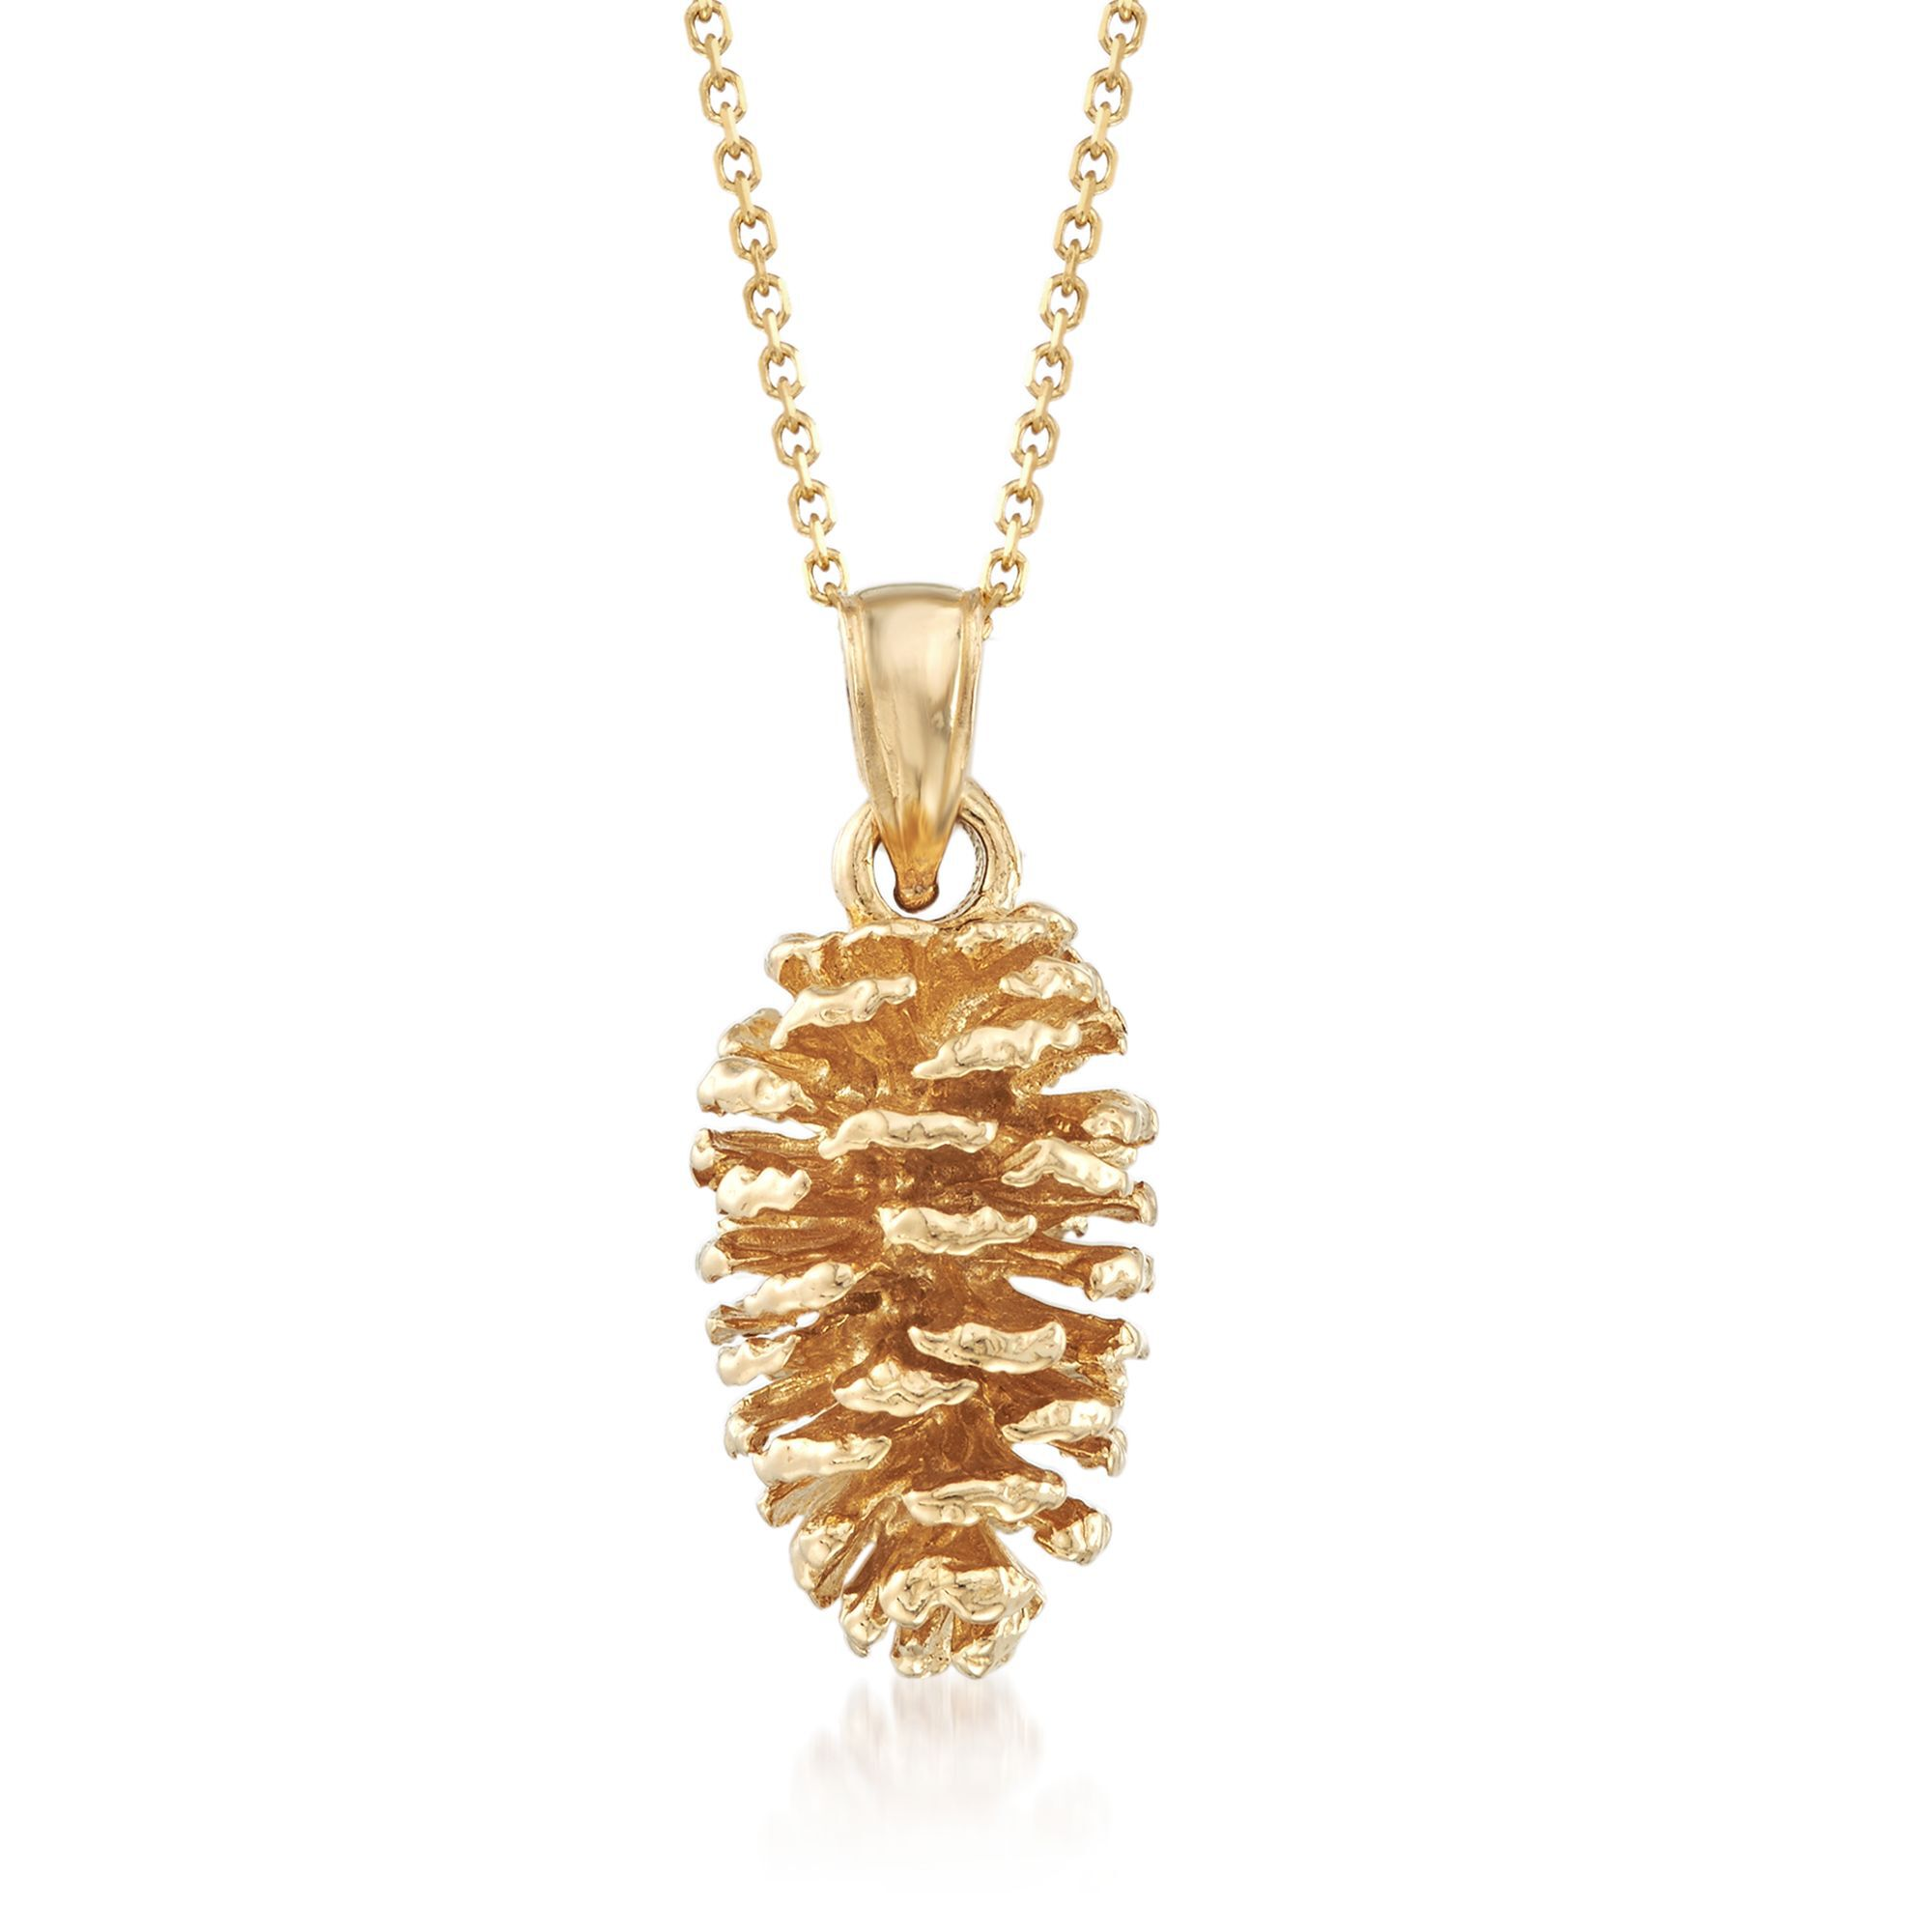 14K Yellow Gold 3-D Pine Cone Pendant on an Adjustable 14K Yellow Gold Chain Necklace